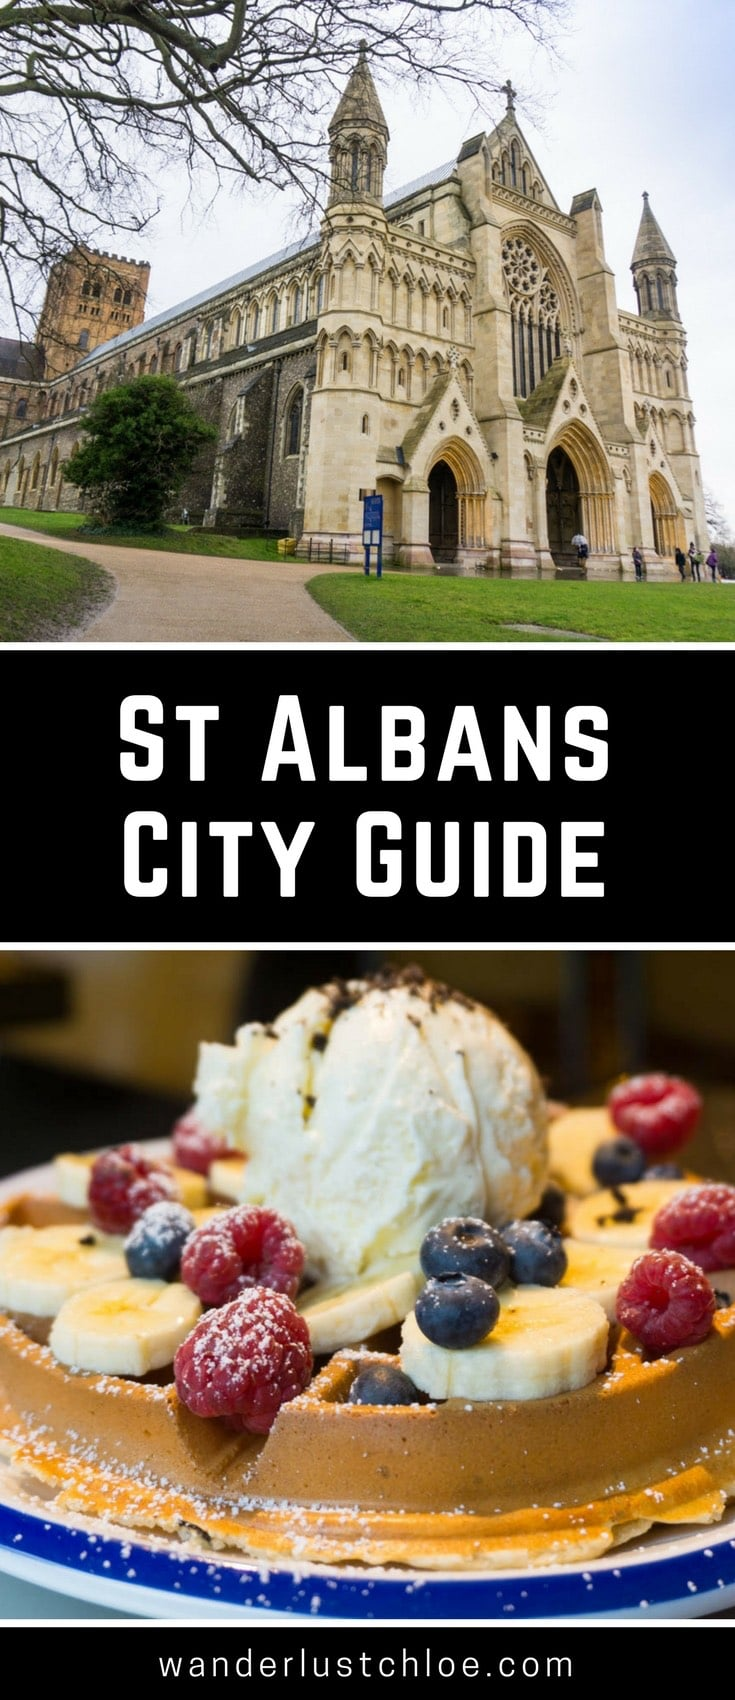 St Albans City Guide, England